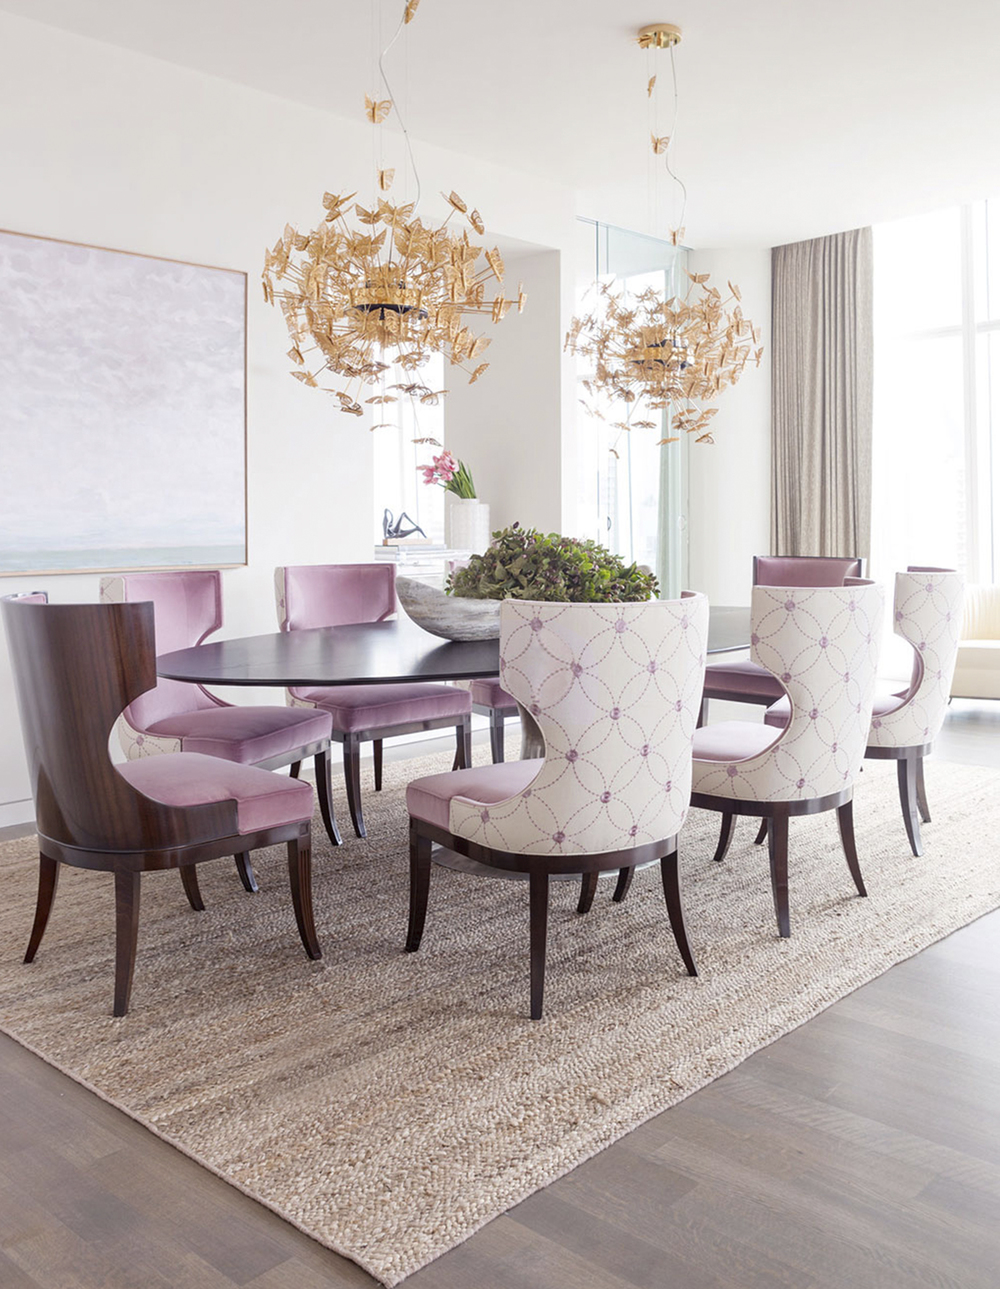 10 Trendy Dining Rooms Decoration Ideas to Inspire You trendy dining rooms 10 Trendy Dining Rooms Decoration Ideas to Inspire You 10 Trendy Dining Room Decoration Ideas to Inspire You3